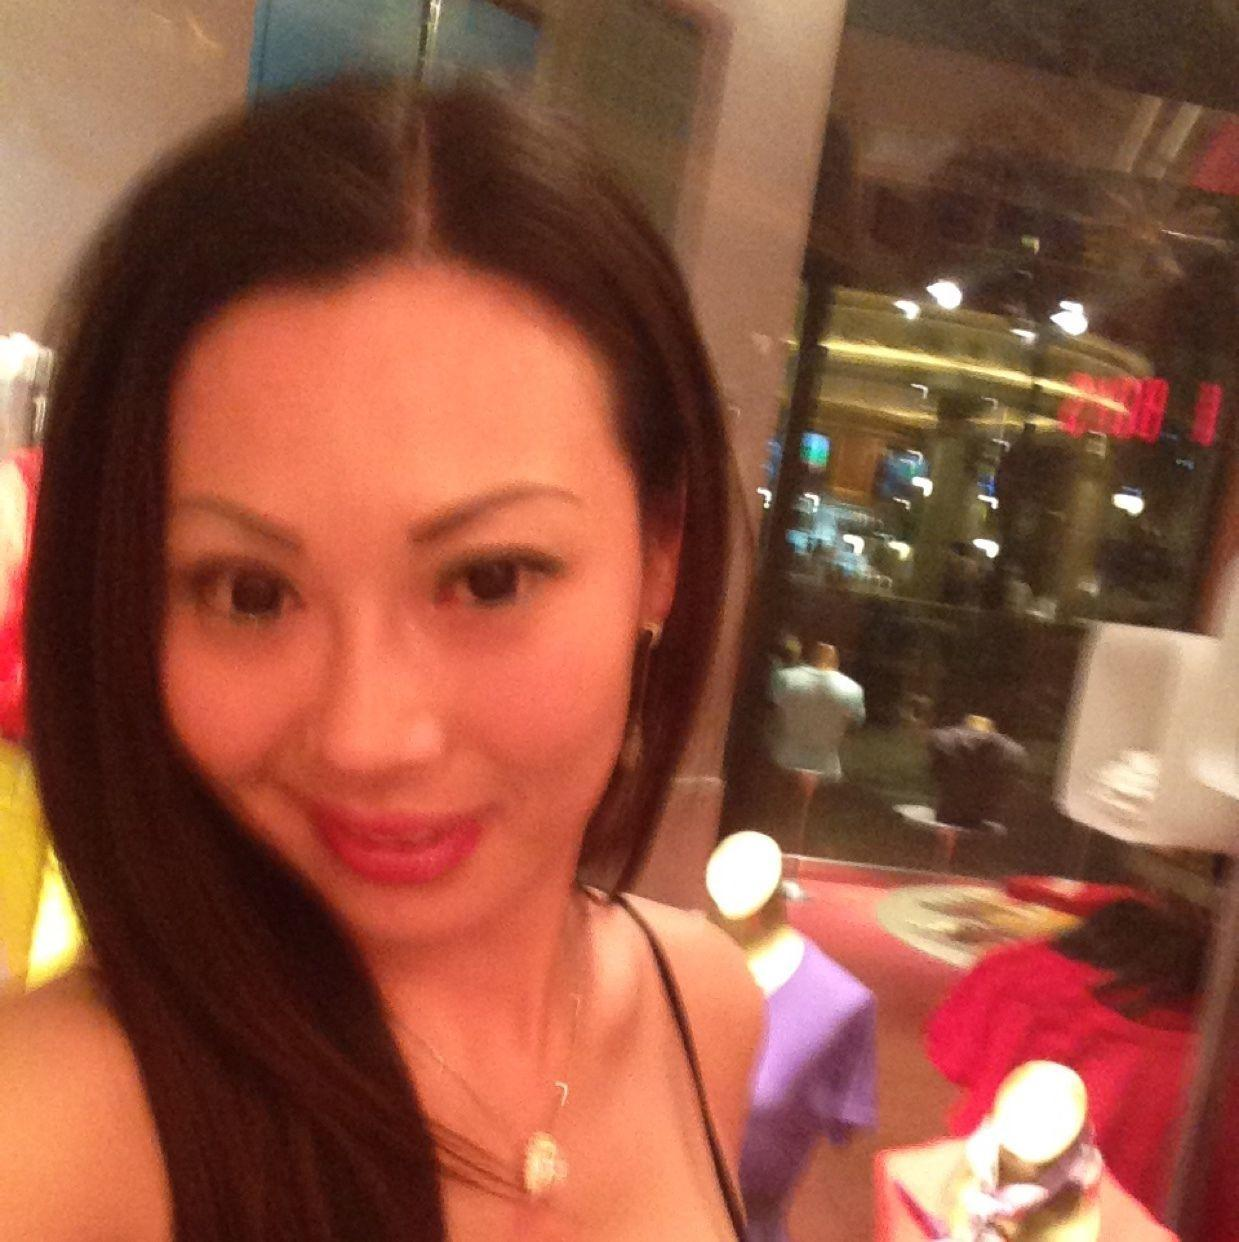 asian single women in covina Women seeking men in orange county (1  cute girl still single looking for a kind man to build up a family images and contact  women seek men west covina, ca.